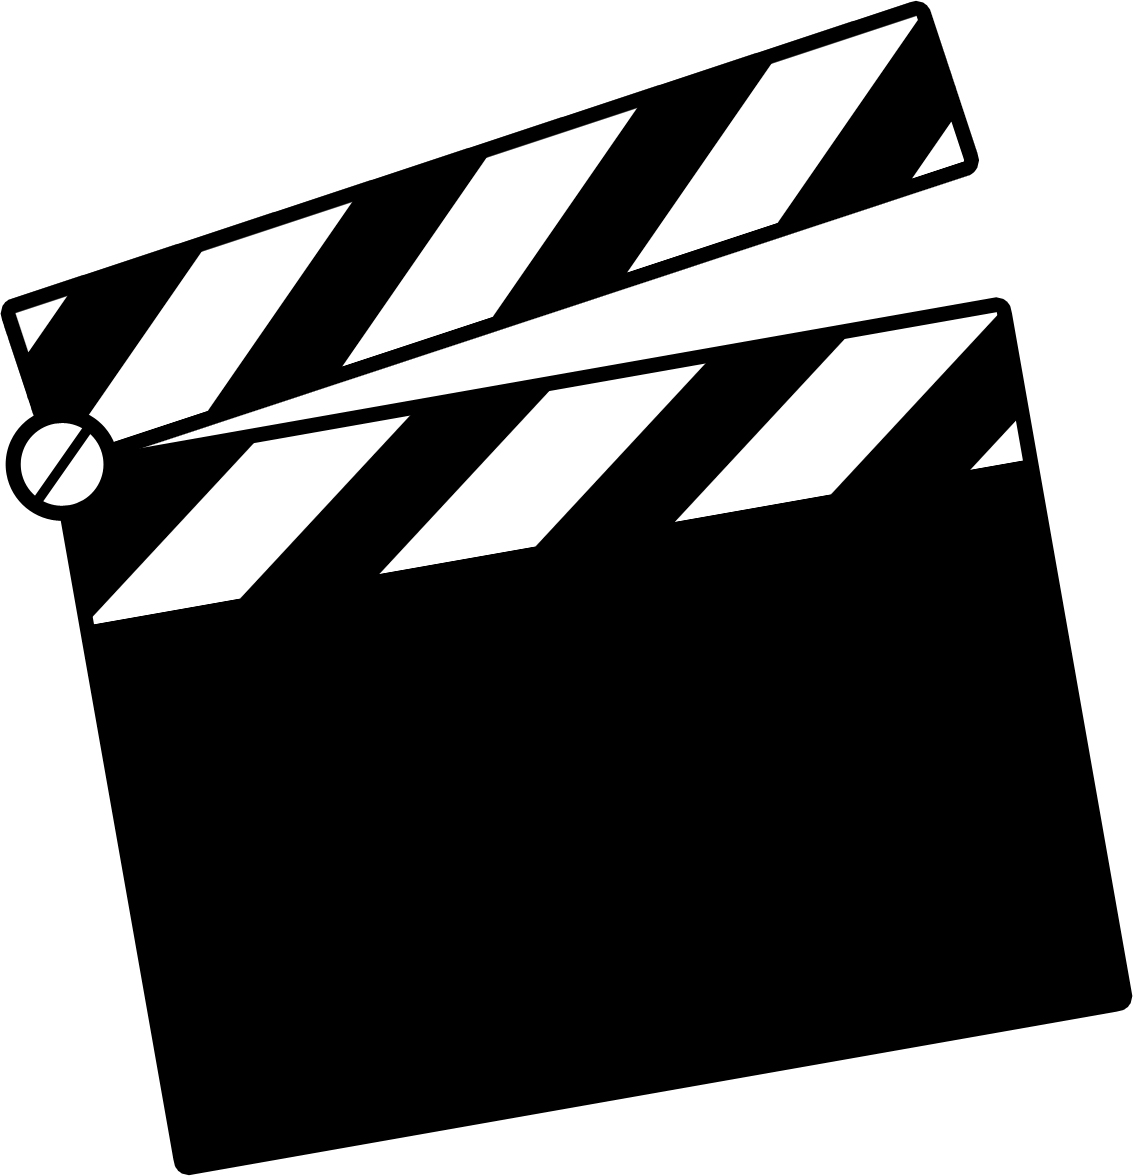 Director movie clapper clip art many interesting cliparts